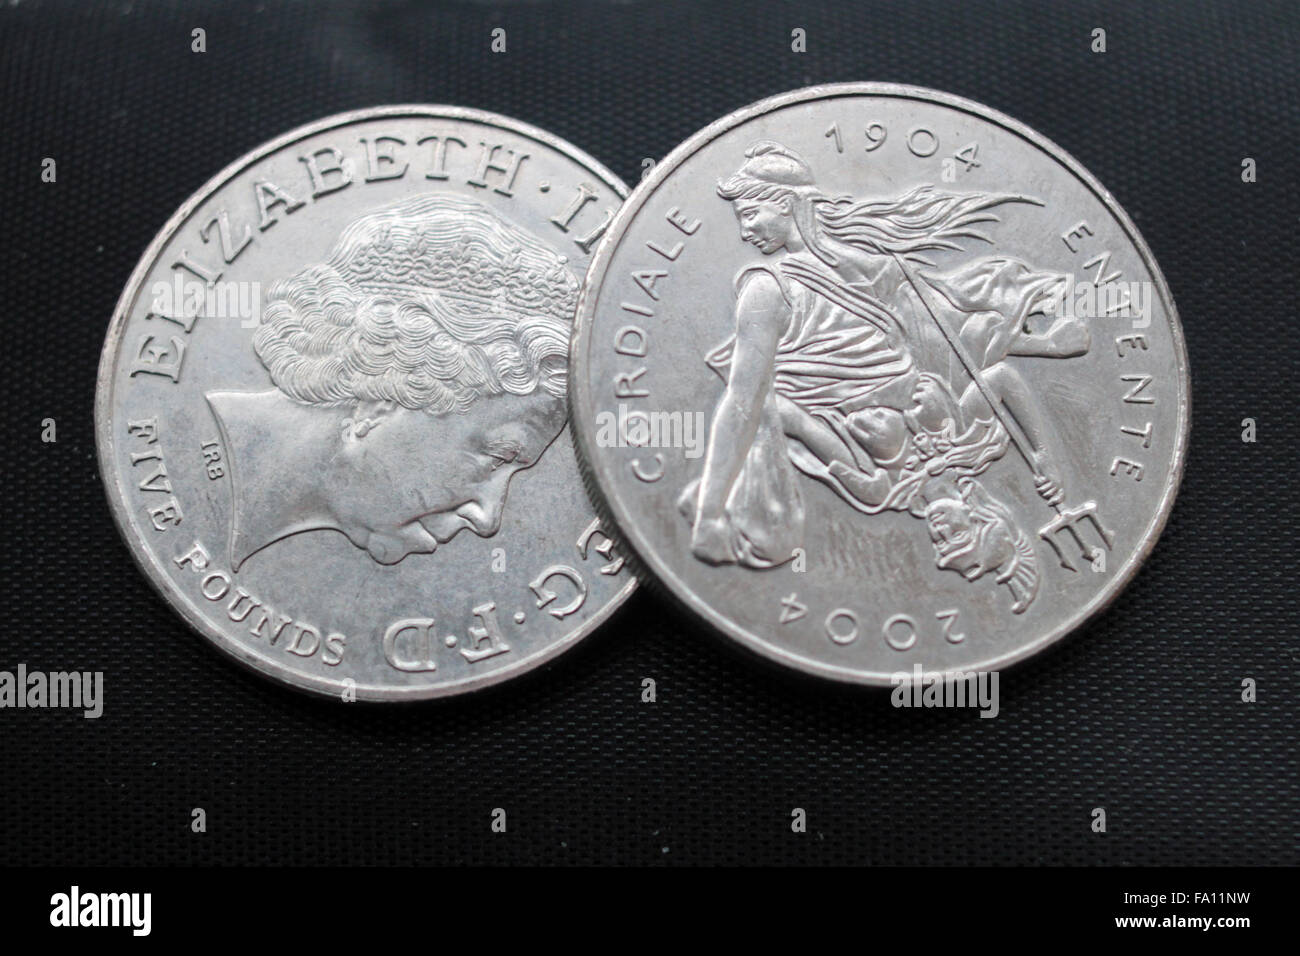 Obverse and reverse of British commemorative five pound coin - Stock Image